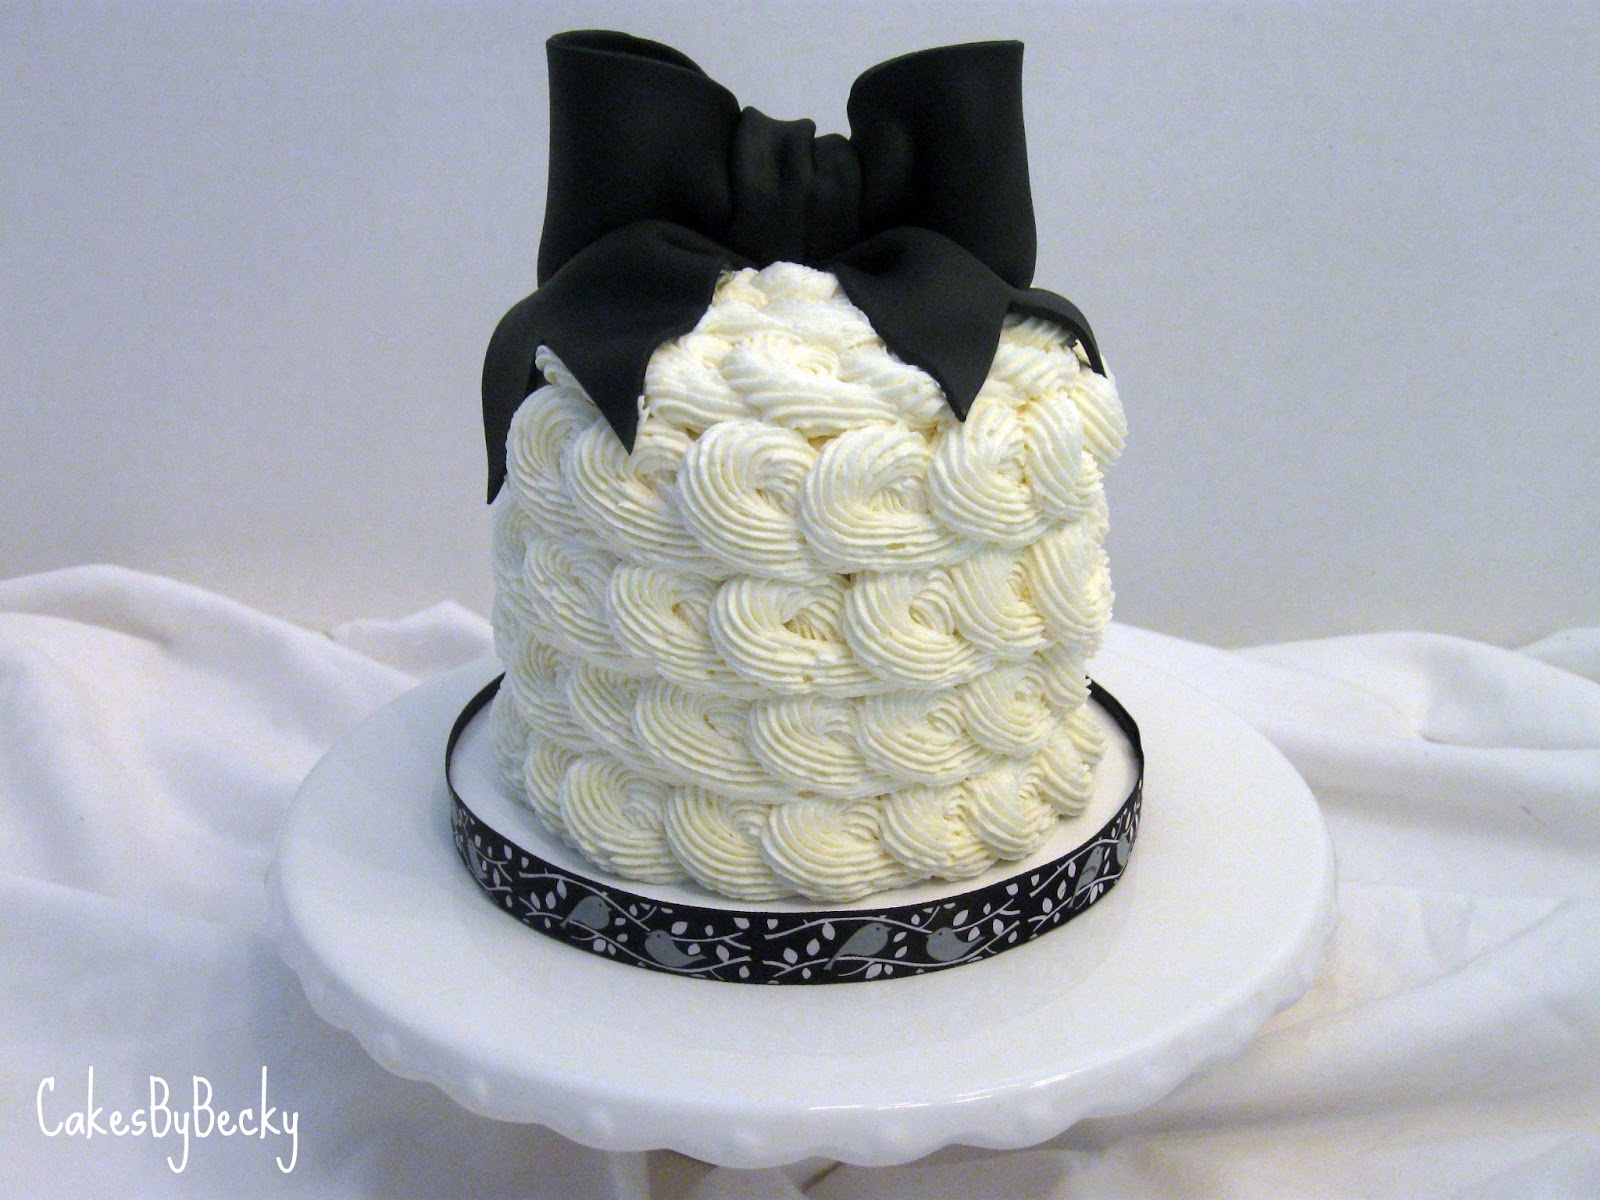 Cakes by Becky Ivory Buttercream Rosette Cake with Black Bow